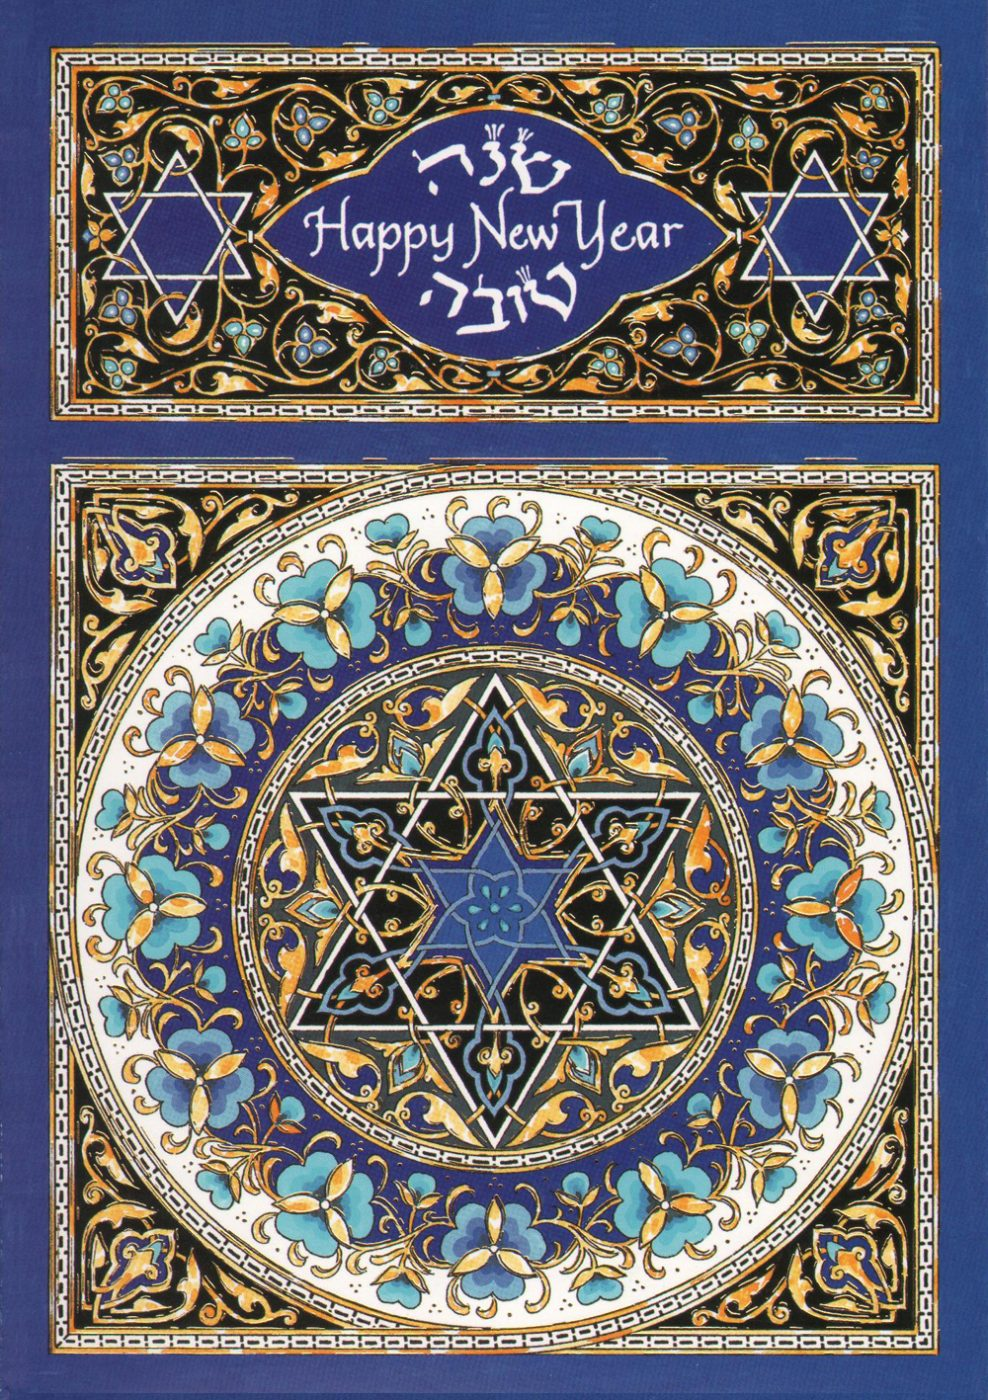 Jewish New Year Caspi Cards Art